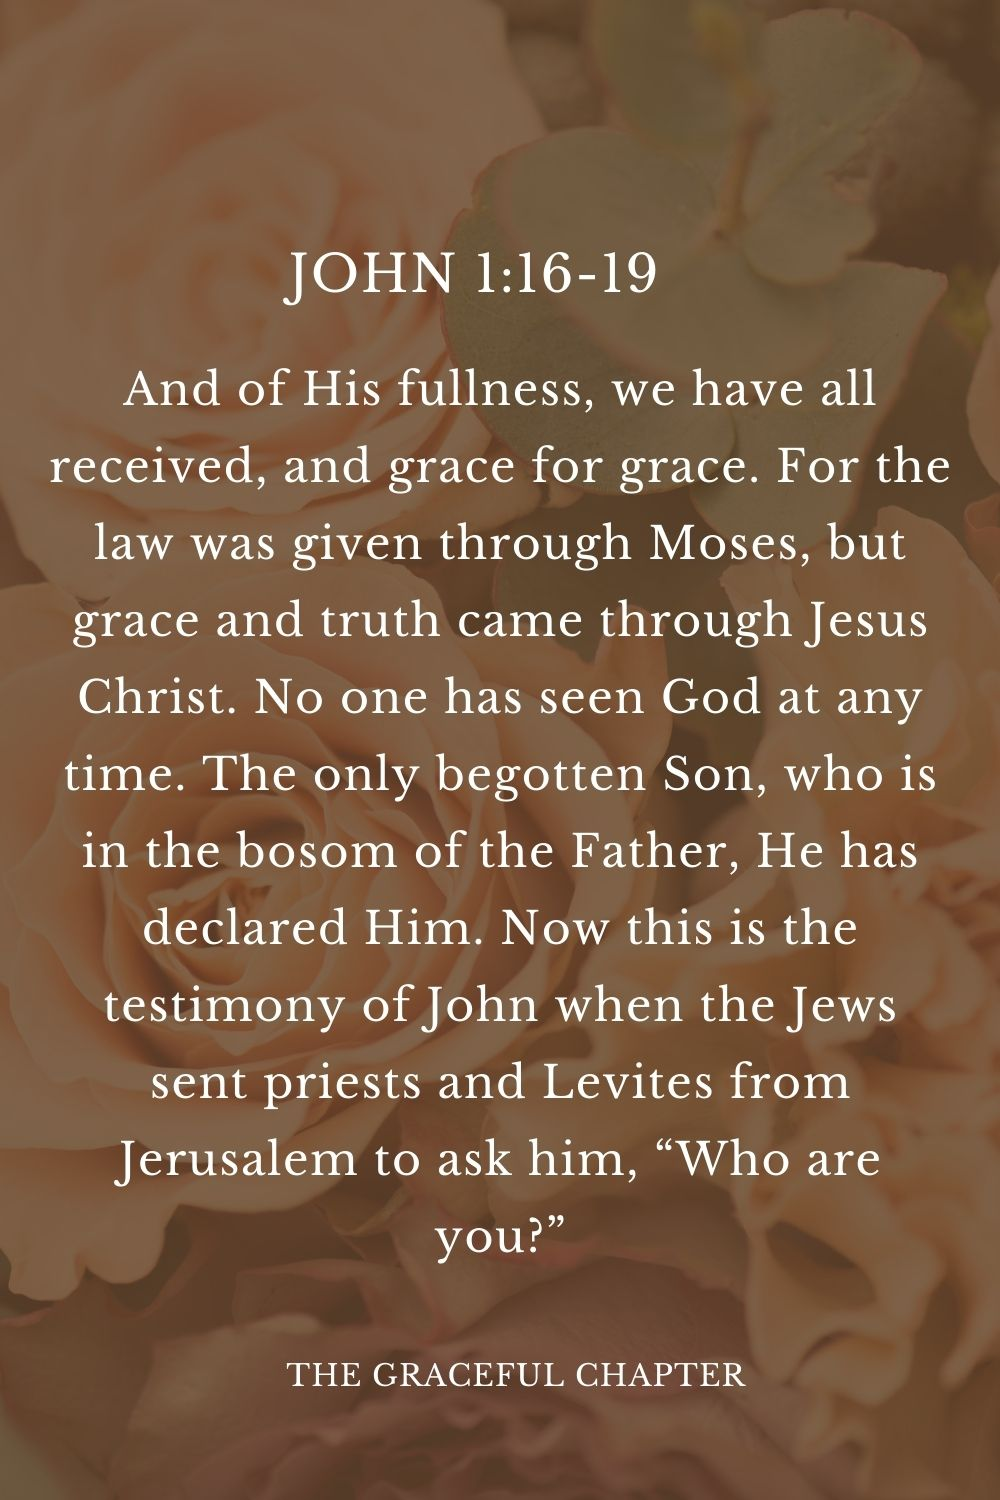 """And of His fullness, we have all received, and grace for grace. For the law was given through Moses, but grace and truth came through Jesus Christ. No one has seen God at any time. The only begotten Son, who is in the bosom of the Father, He has declared Him. Now this is the testimony of John when the Jews sent priests and Levites from Jerusalem to ask him, """"Who are you?"""" John 1:16-19"""